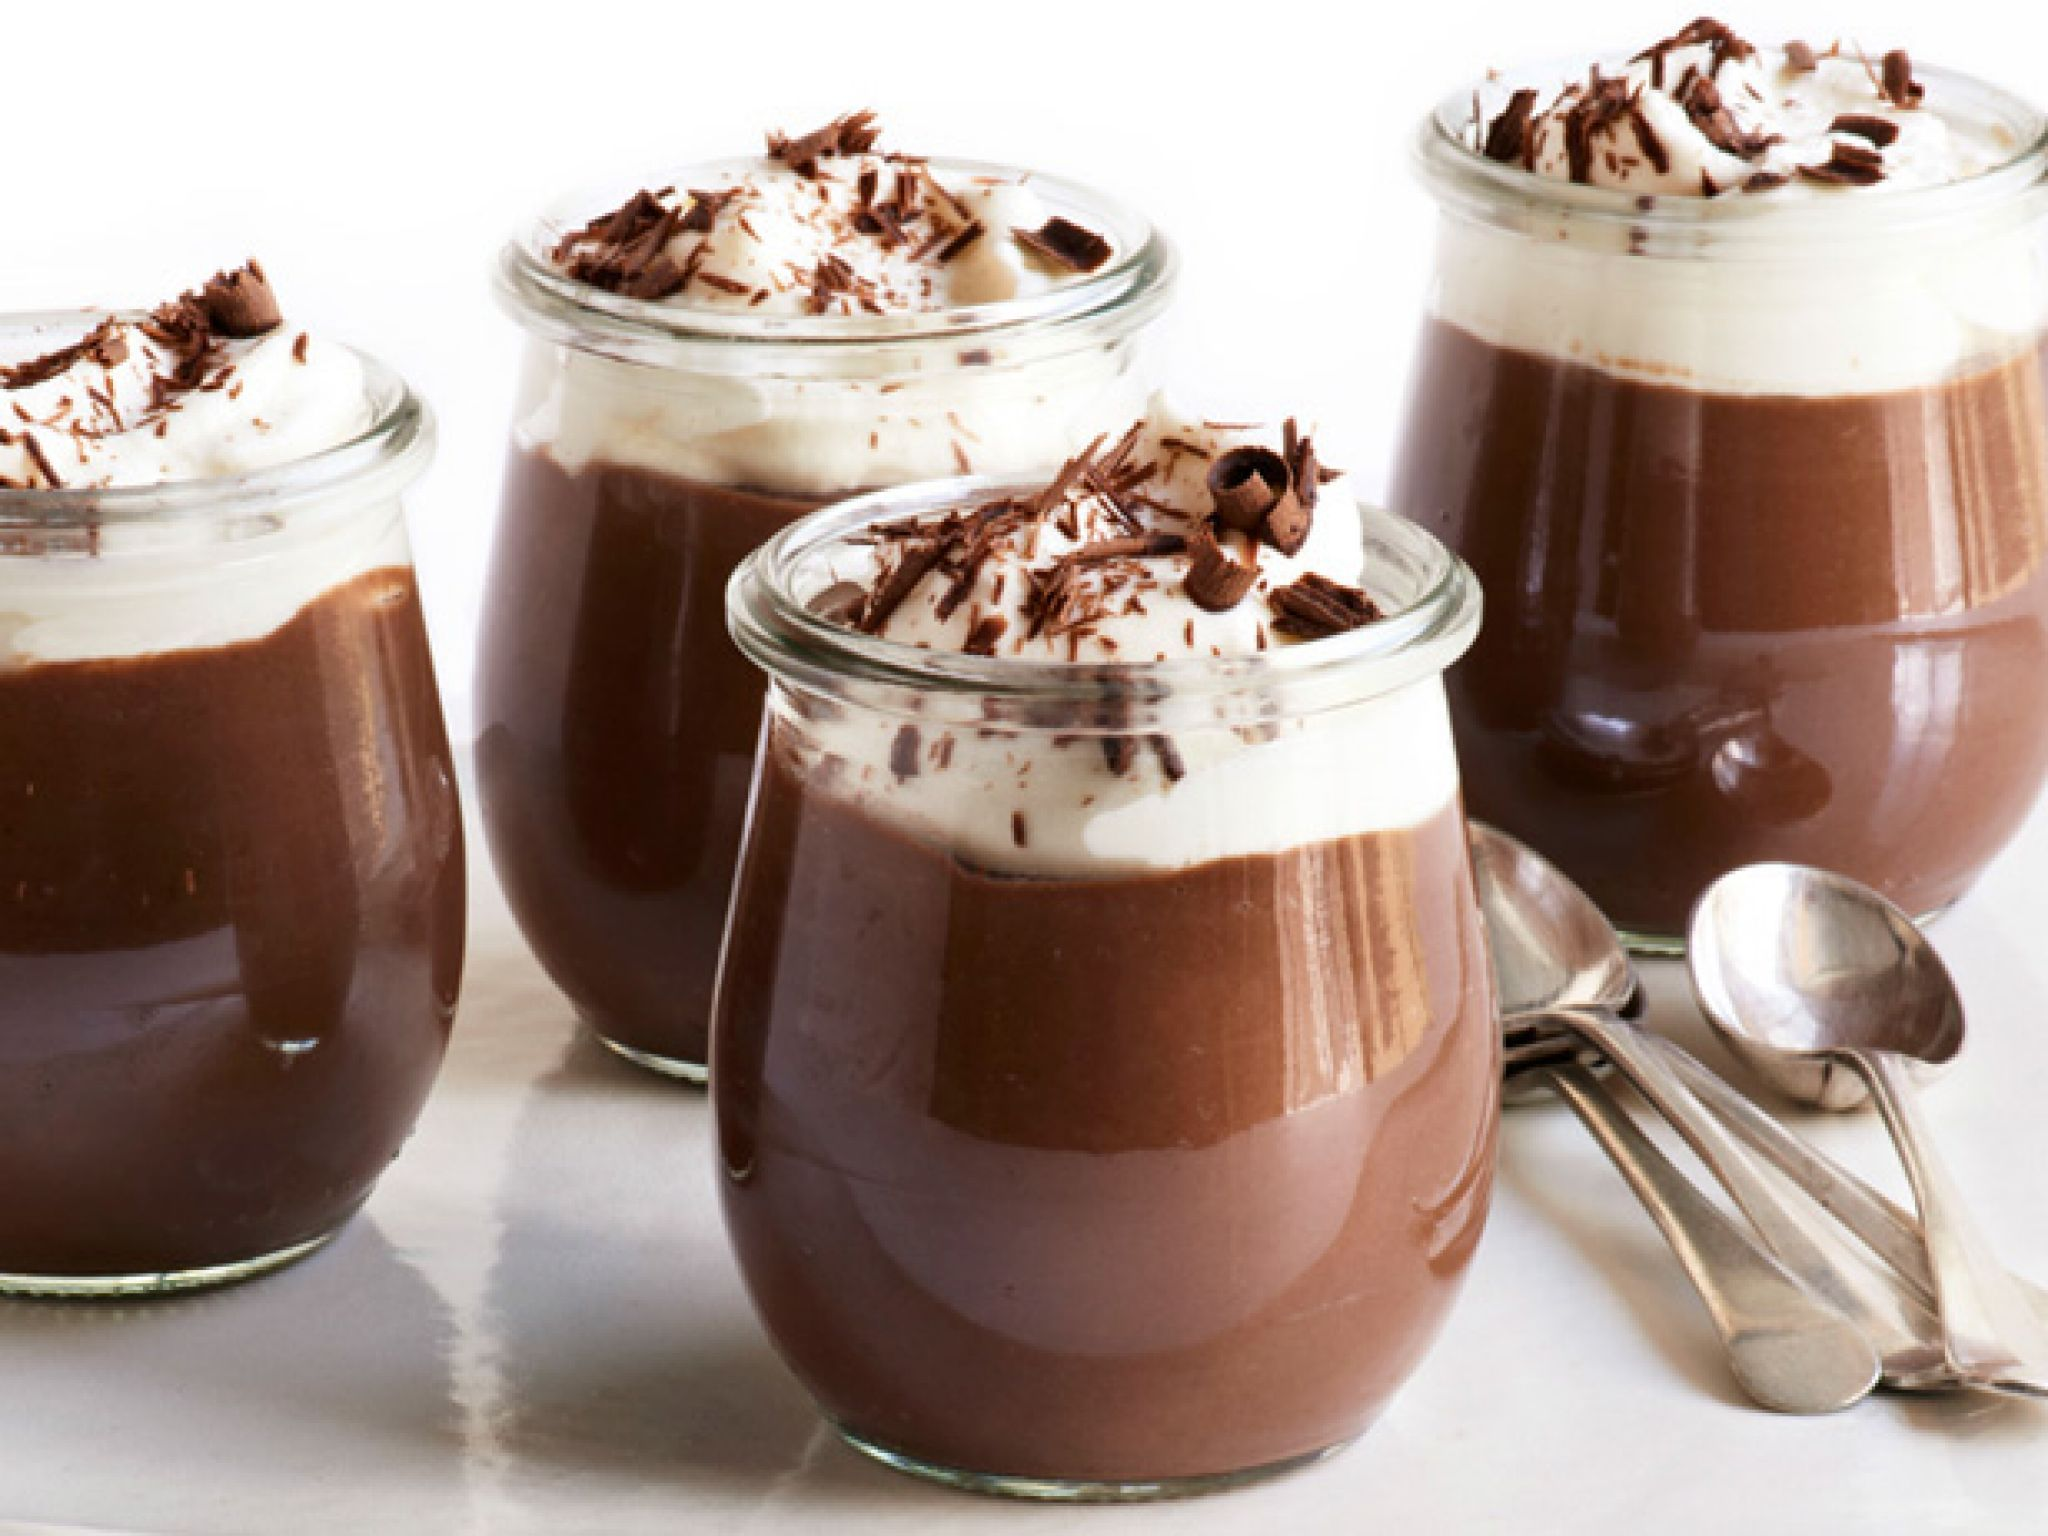 Triple chocolate pudding recipe chocolate pudding recipes triple chocolate pudding chocolate pudding recipeschocolate cheesecake recipeseasy forumfinder